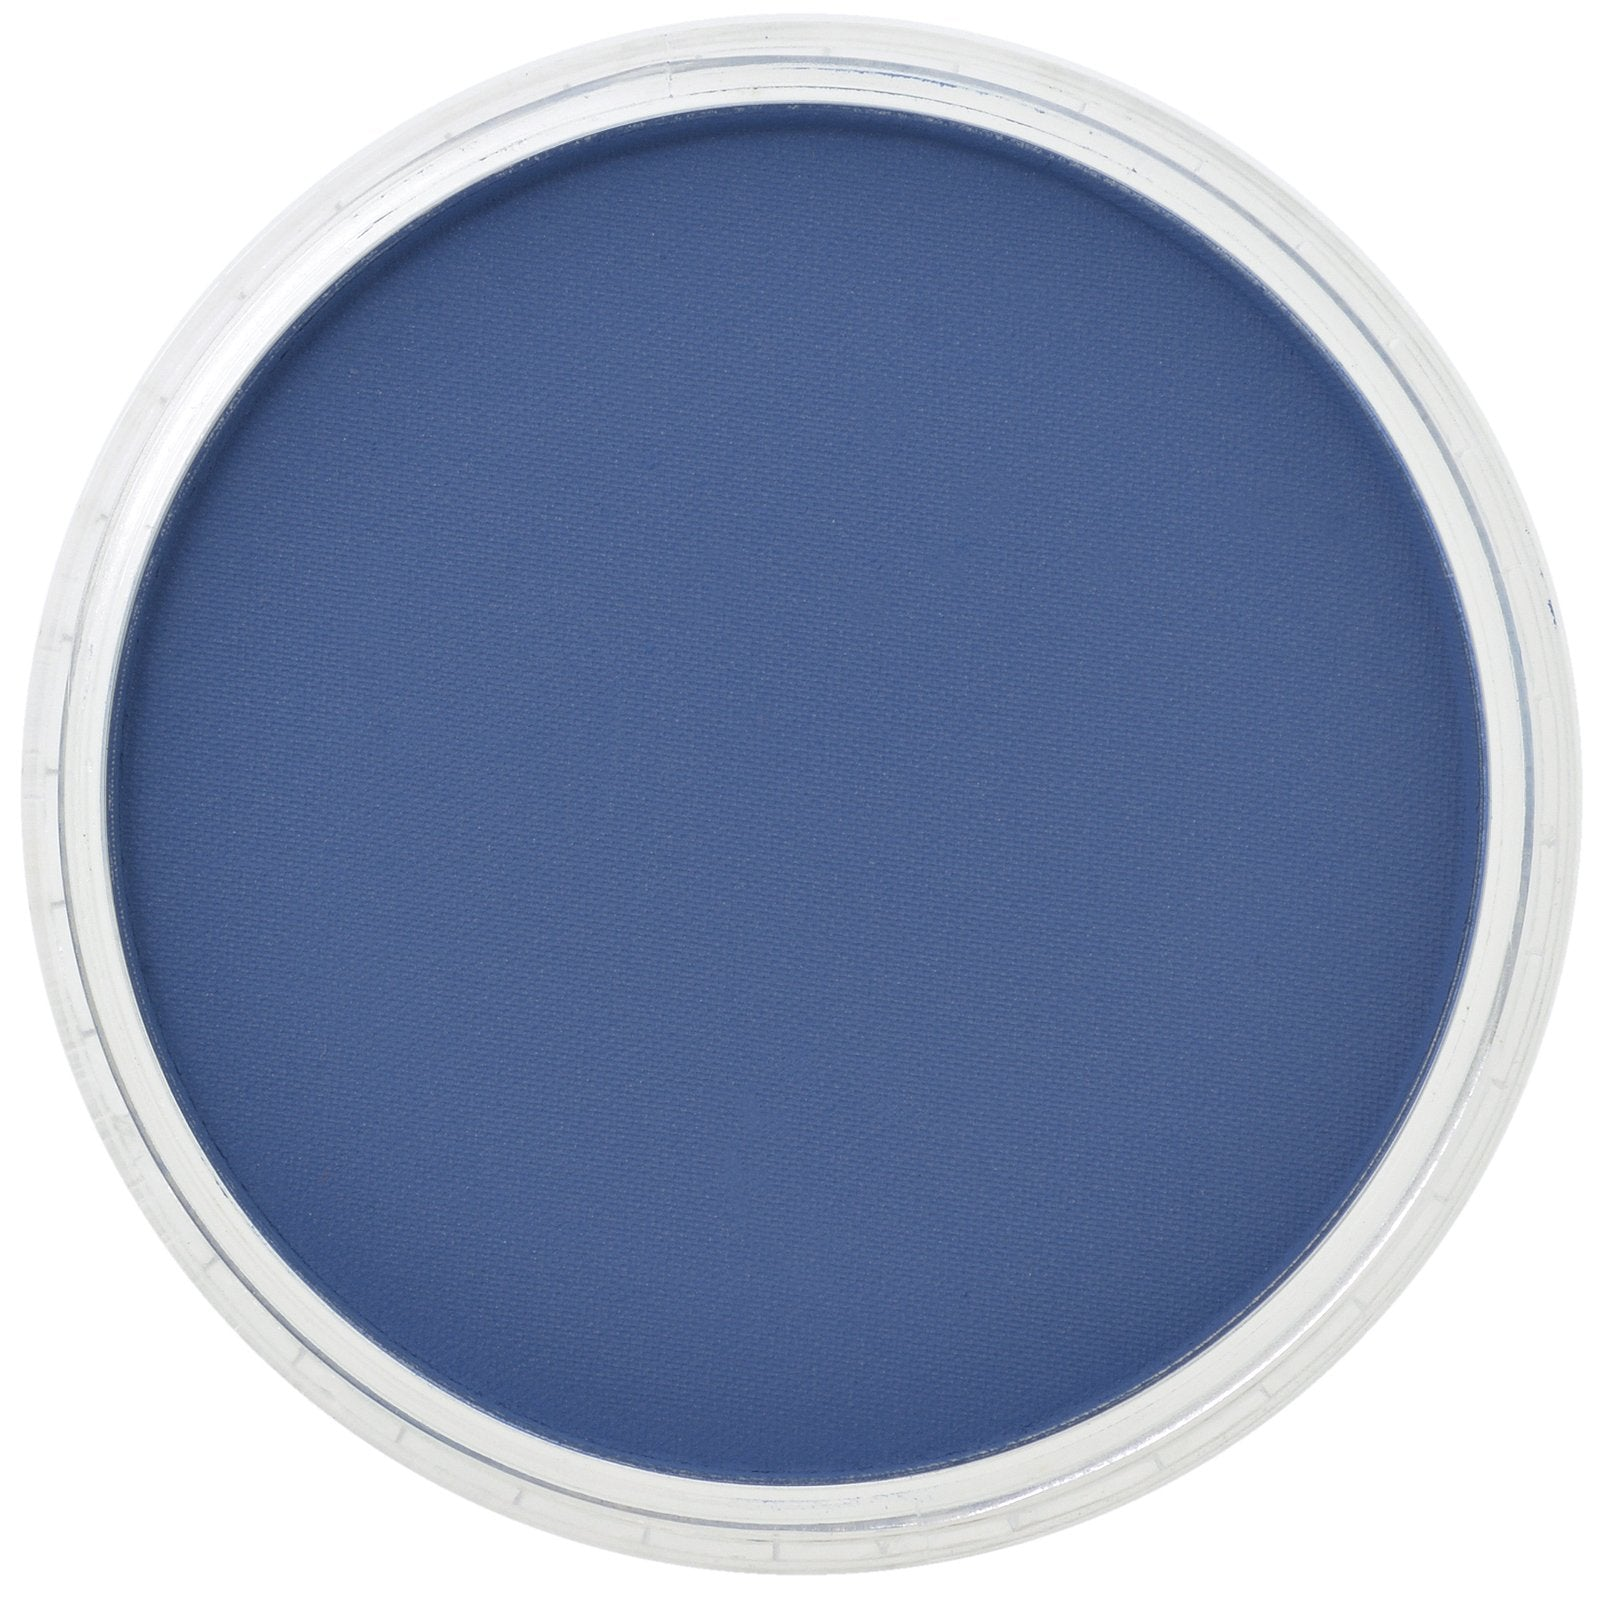 PanPastel - 520.3 ULTRAMARINE BLUE SHADE